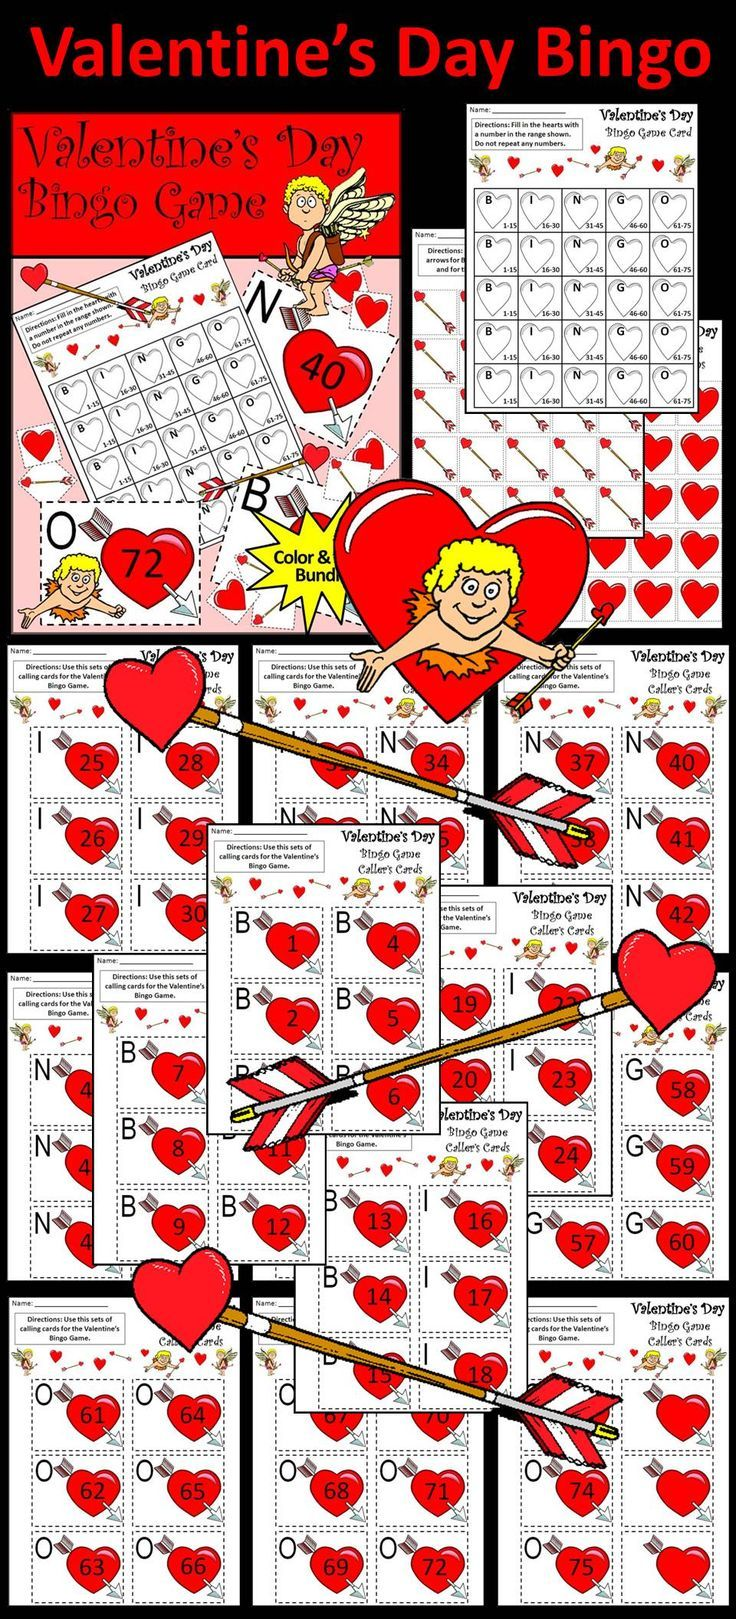 Valentine's Day Bingo Game Activity Packet: Contains all the necessary components for playing the classic game.  Students create their cards by filling in numbers in the appropriate range.   Valentine's Bingo Game Activity Includes: * One Printable Valentine's Day Bingo Card Template * One Set of Printable Valentine's Heart Tokens * One Set of Printable Cupid's Arrow Tokens * One Set of Valentine's Bingo Callers Cards  #Valentines #Day #Game #Activities #Bingo #Teacherspayteachers